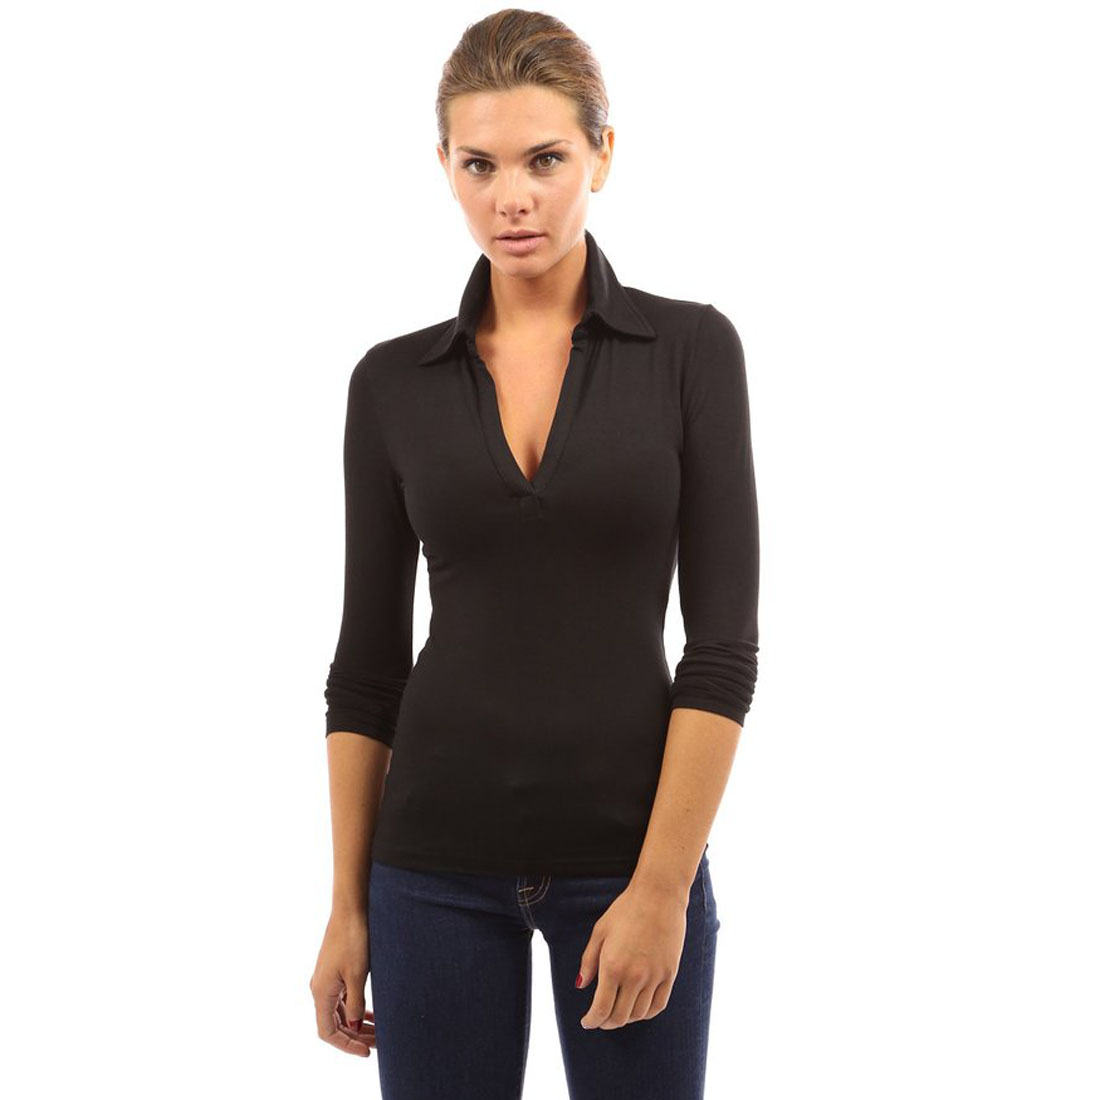 business casual blouses photo - 1